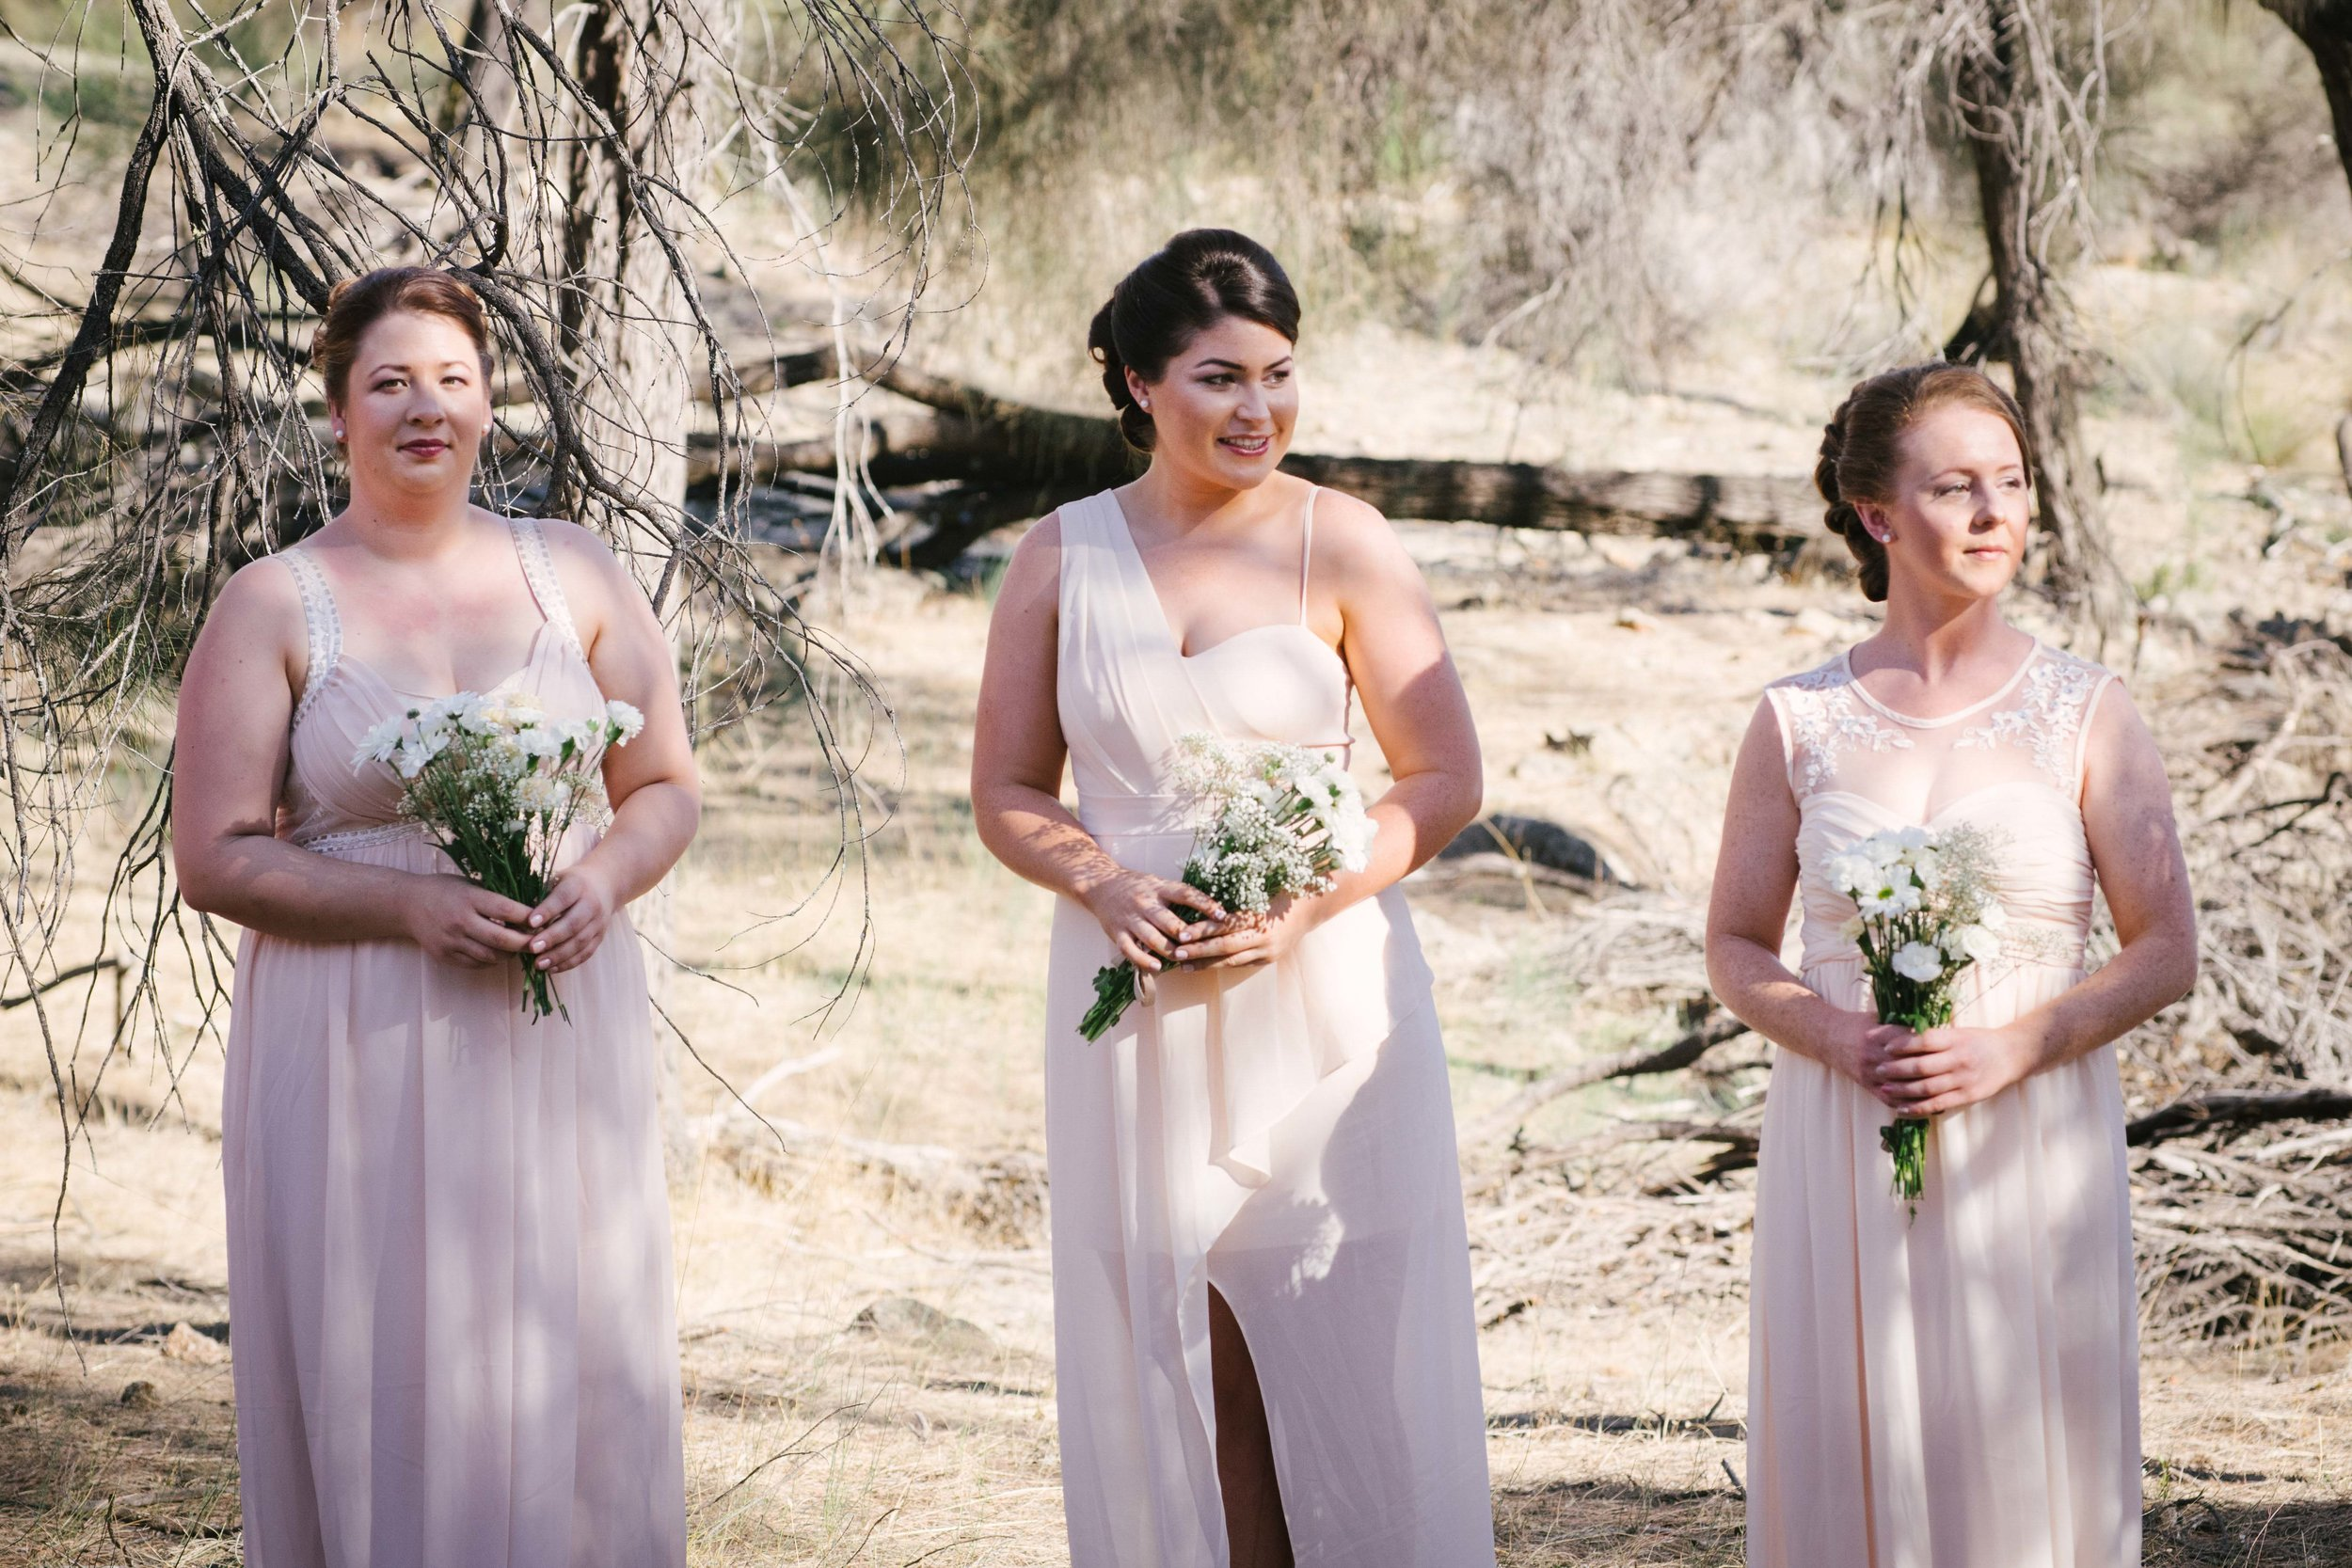 Rustc Rural Farm Wheatbelt Country Wedding Photographer Photography Candid Documentary (10).jpg